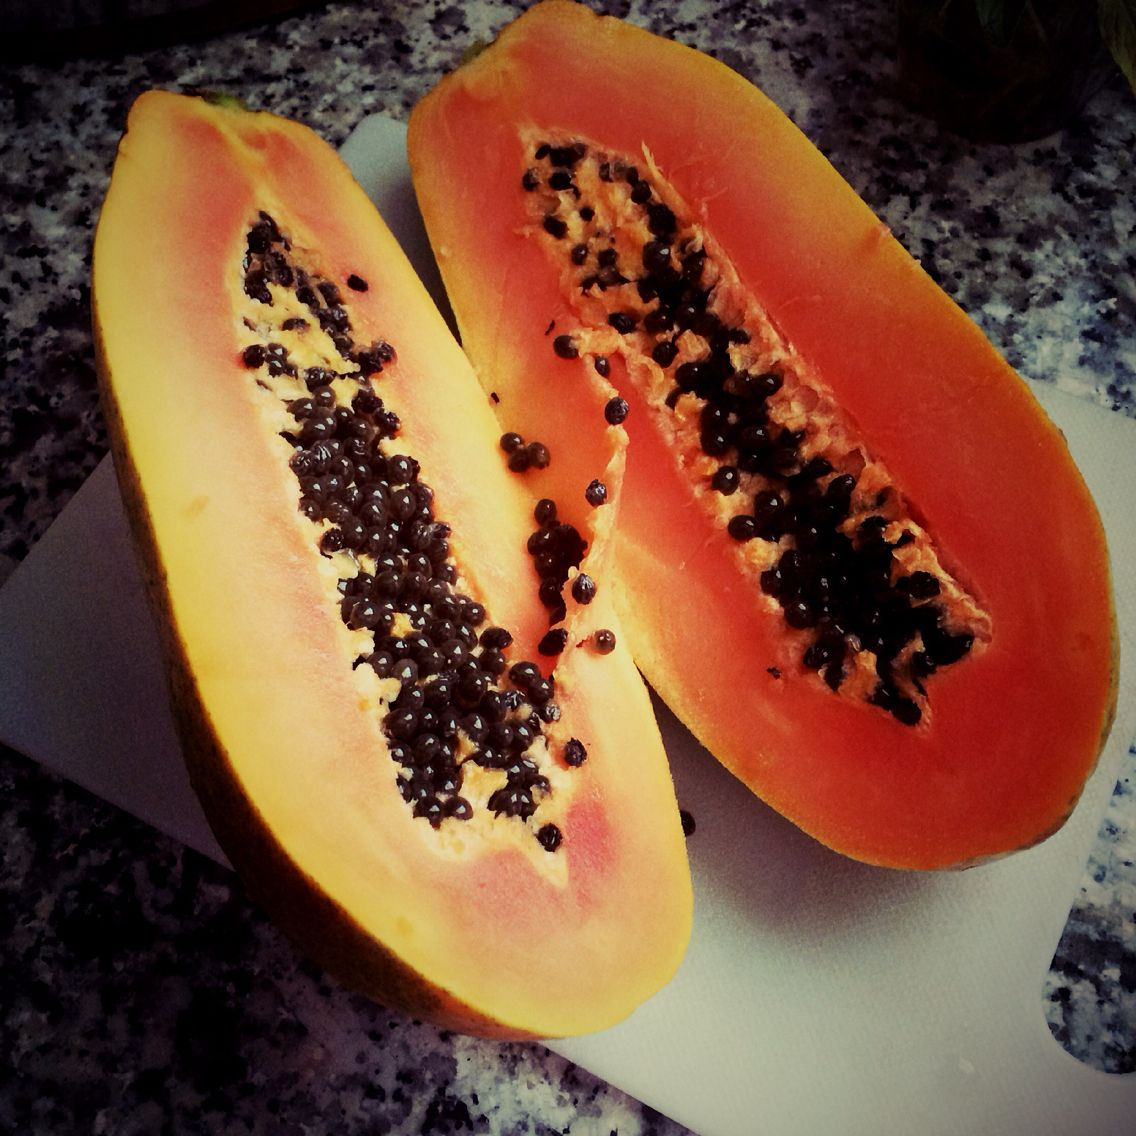 Papaya Anyone?